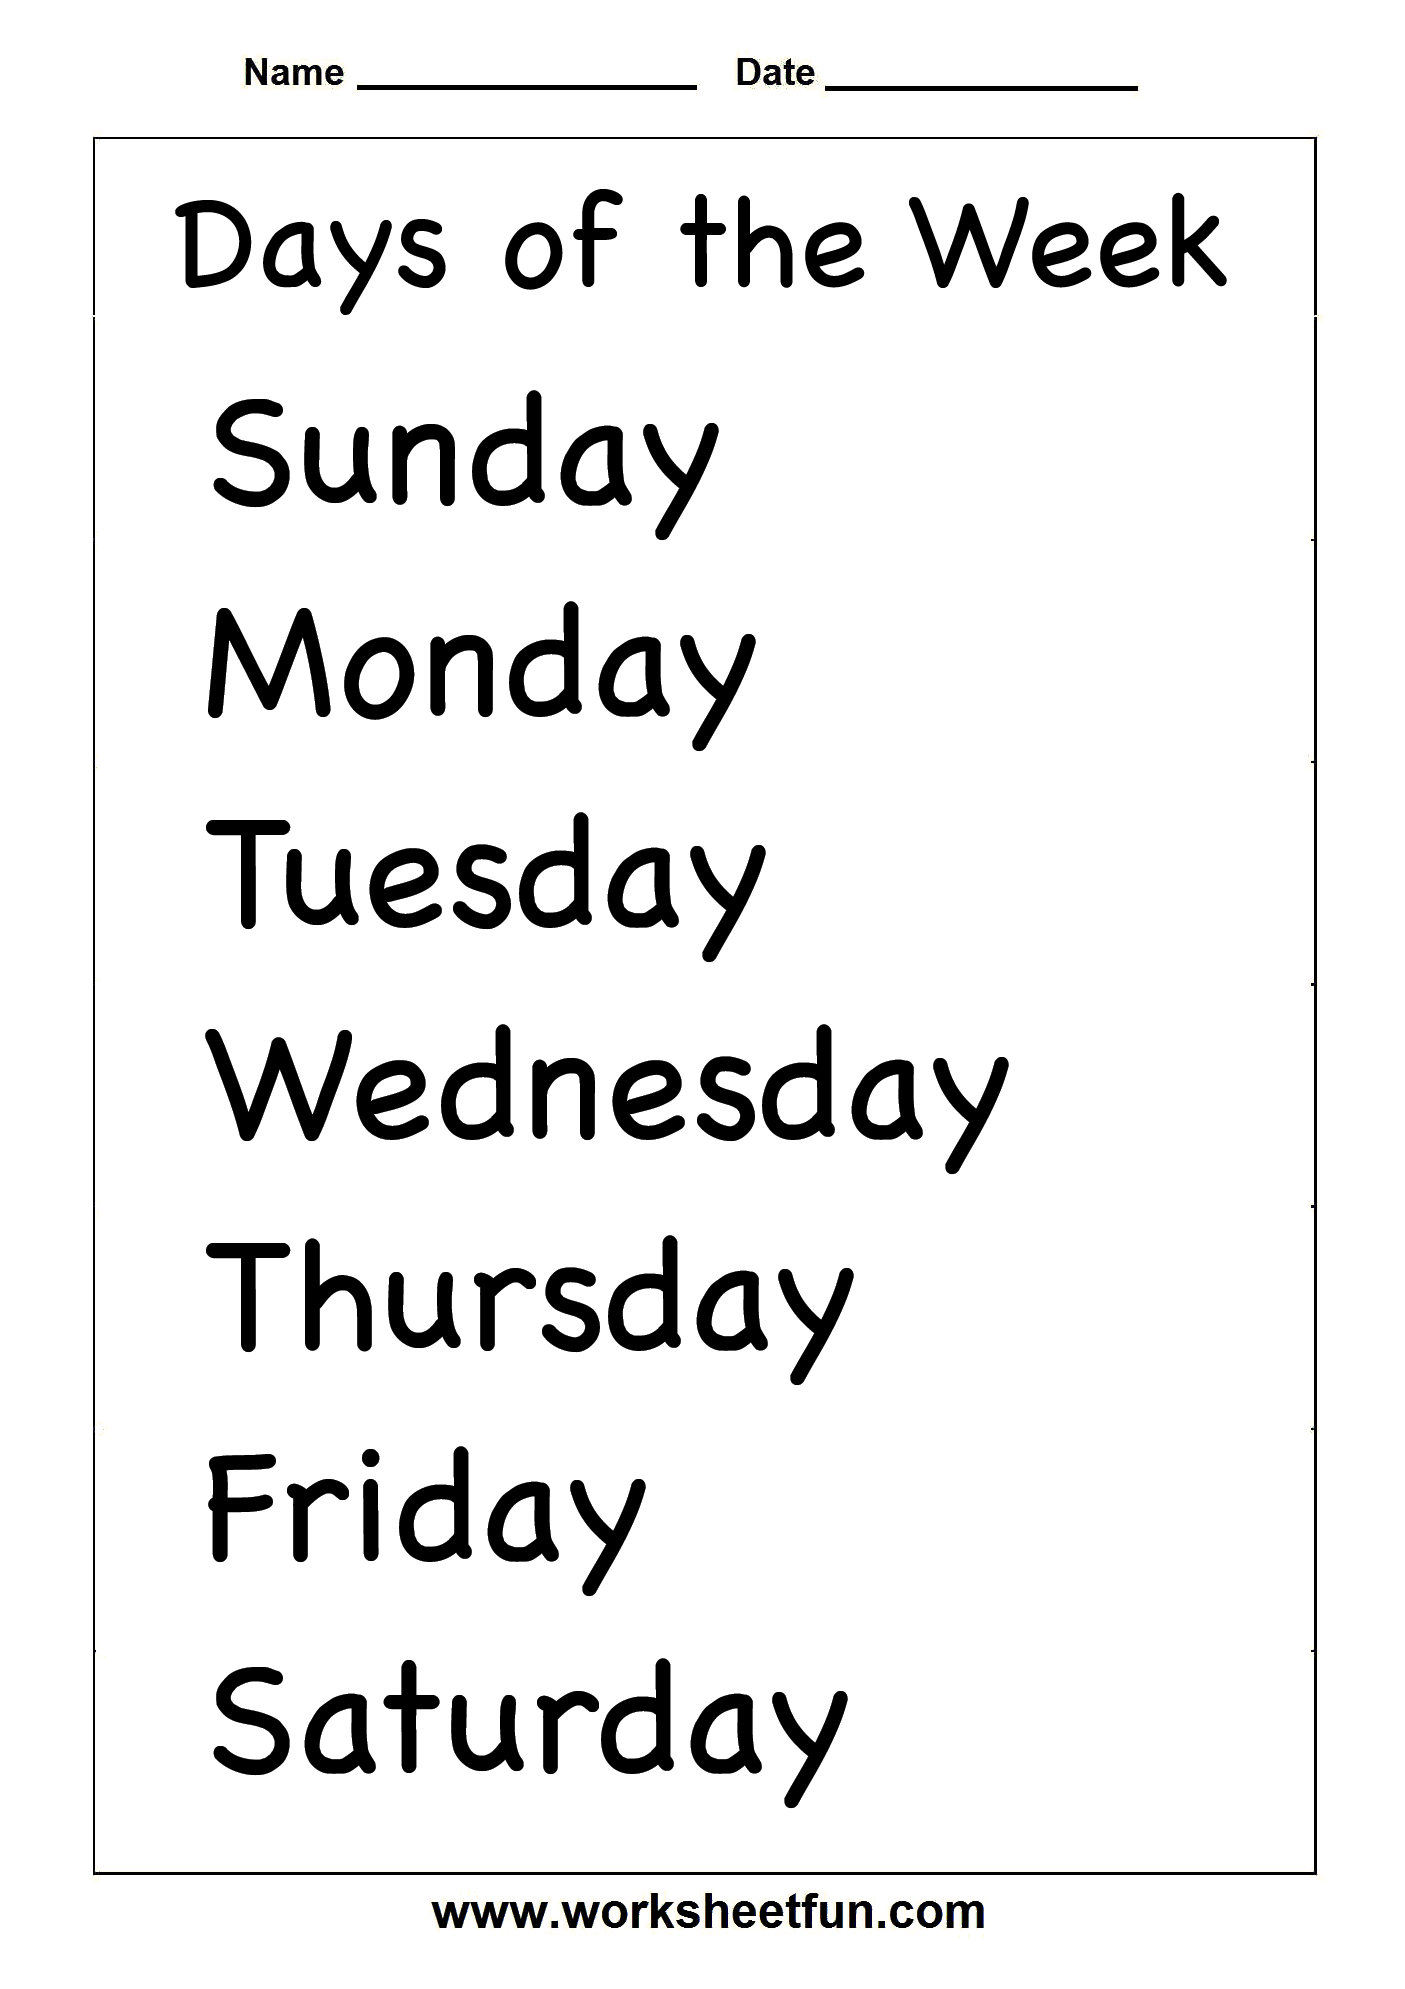 Days Of The Week Two Worksheets Free Printable Worksheets Worksheetfun